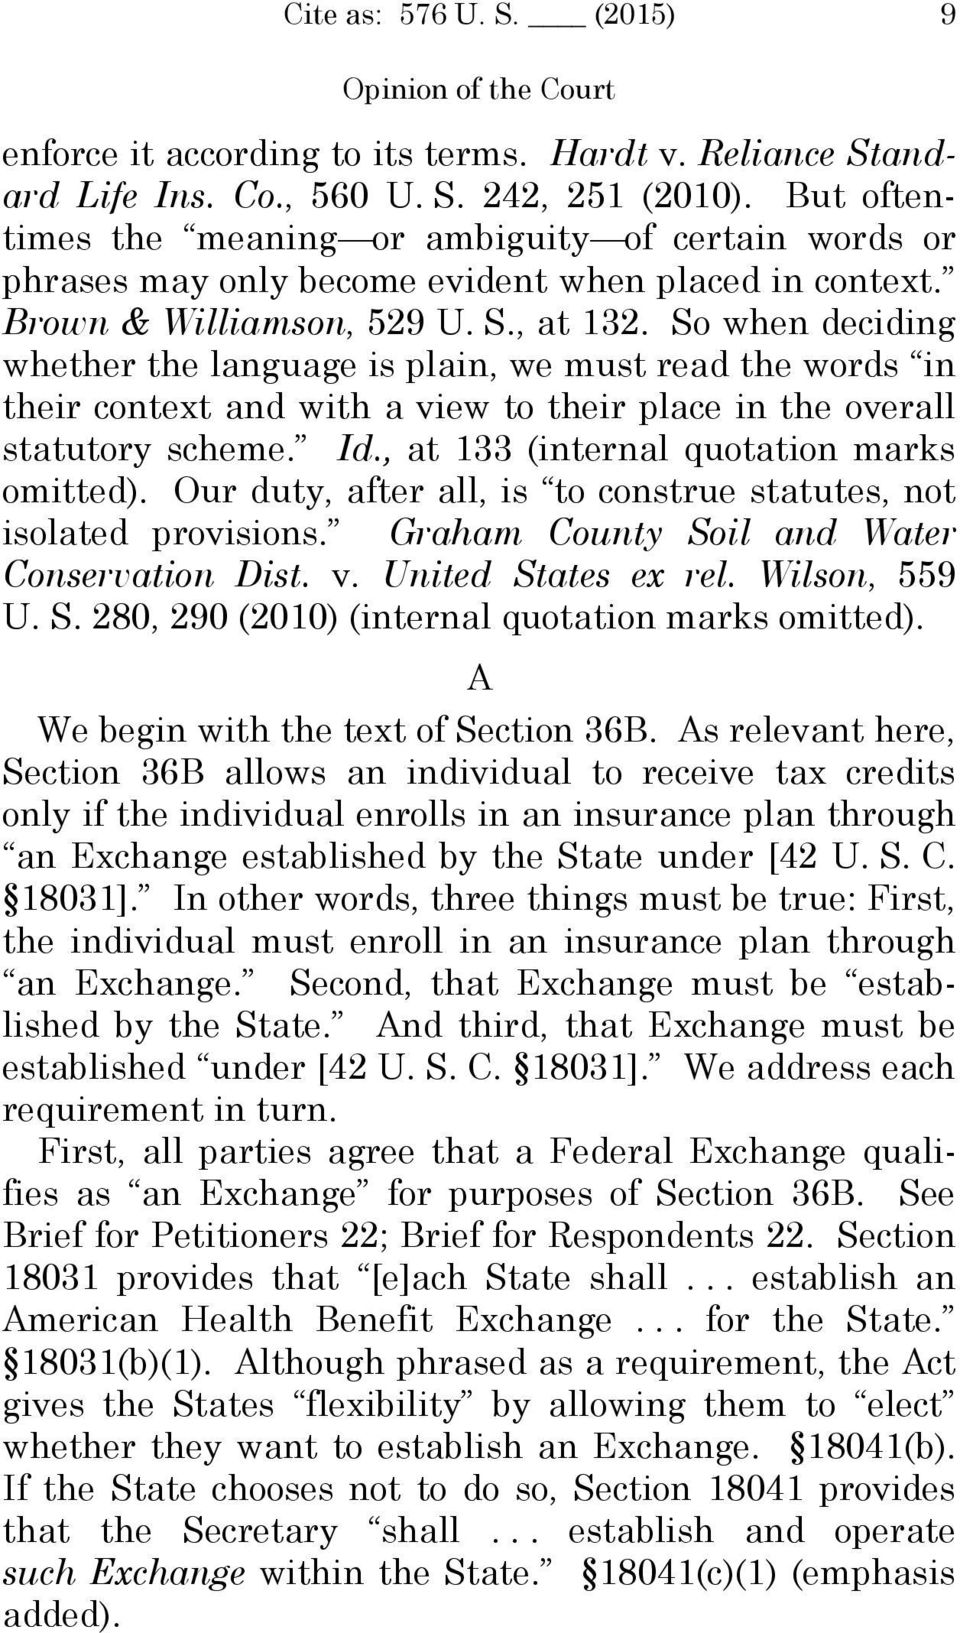 So when deciding whether the language is plain, we must read the words in their context and with a view to their place in the overall statutory scheme. Id., at 133 (internal quotation marks omitted).